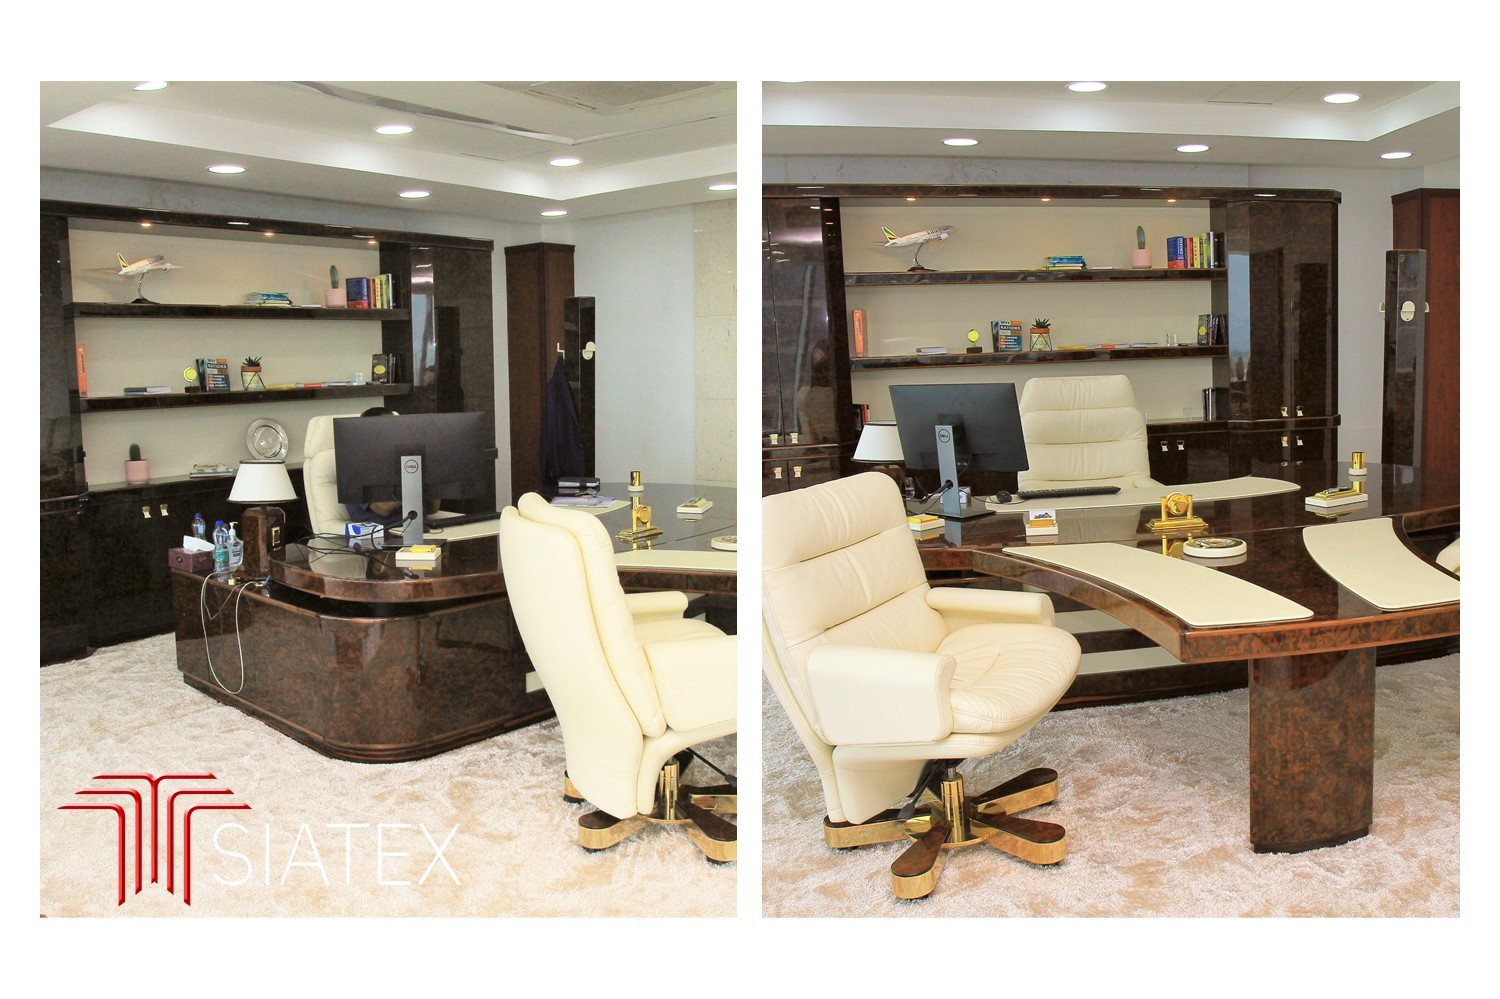 3.office furniture project_luxury ceo desk chairs and bookcase (2)